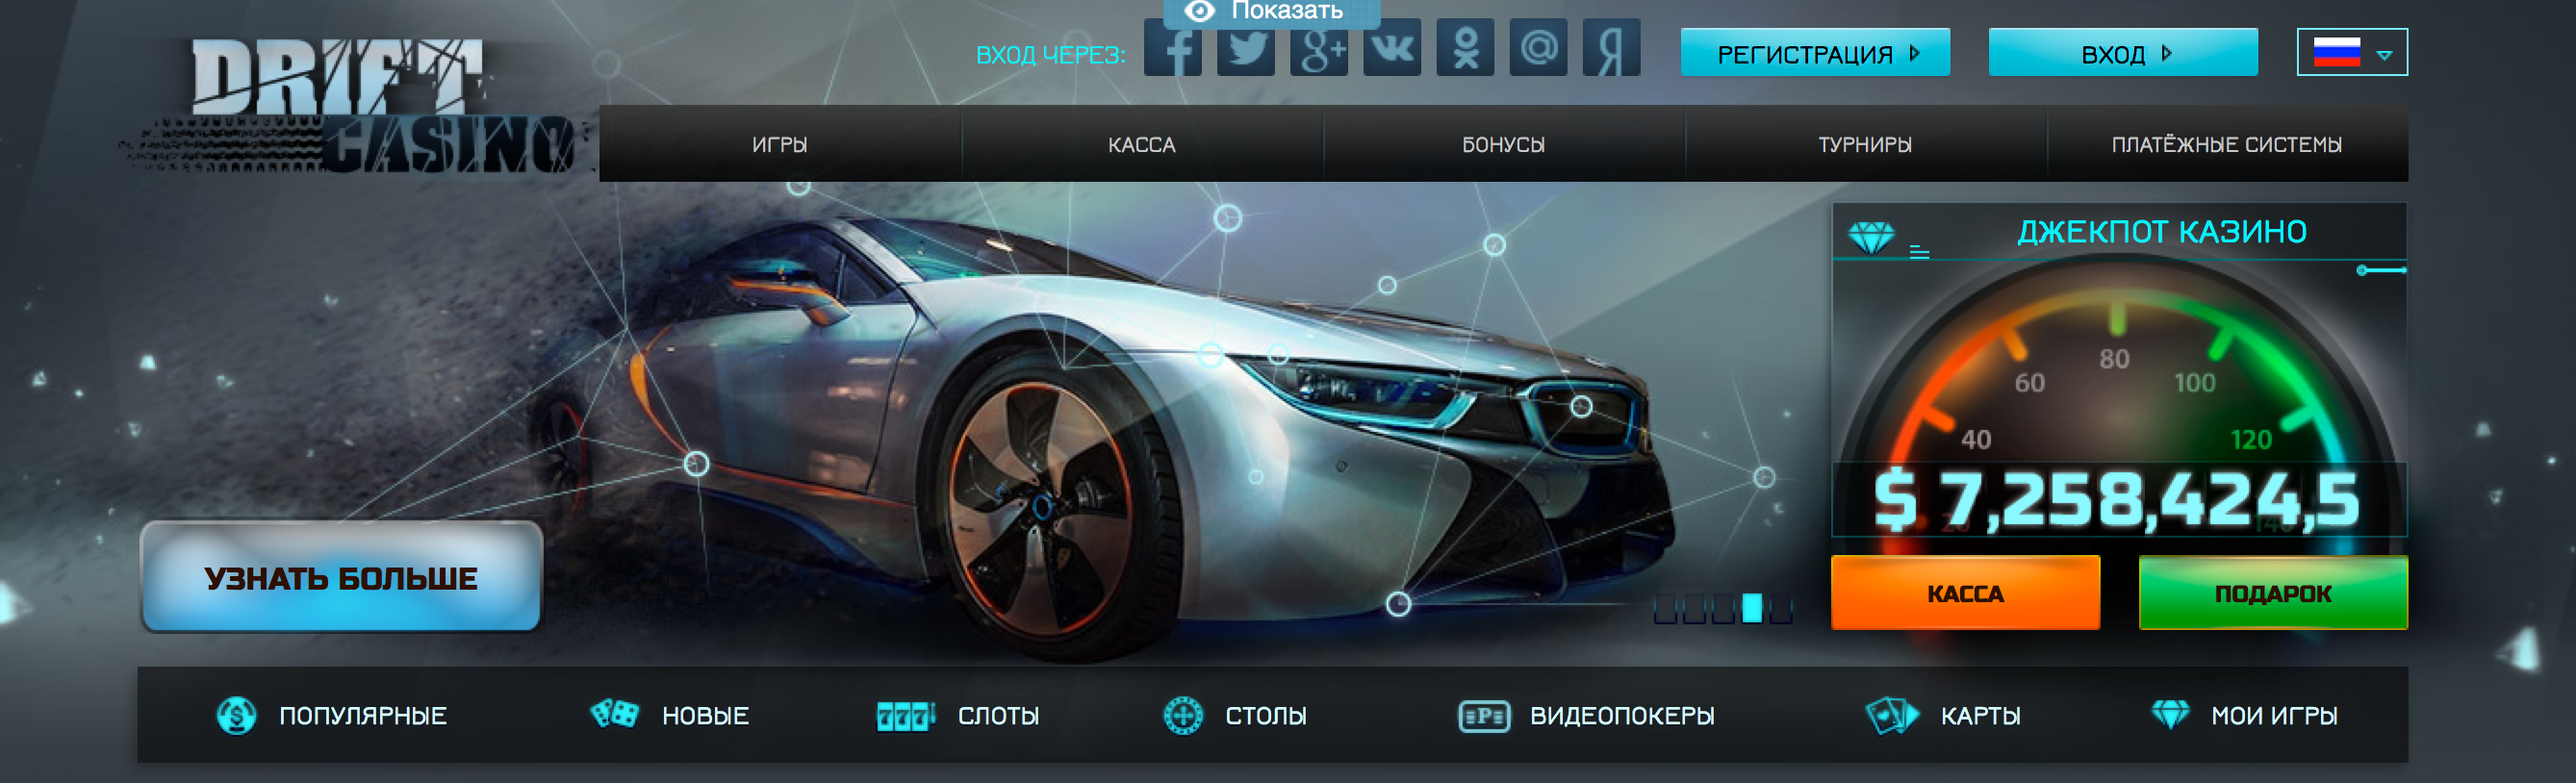 drift casino регистрация